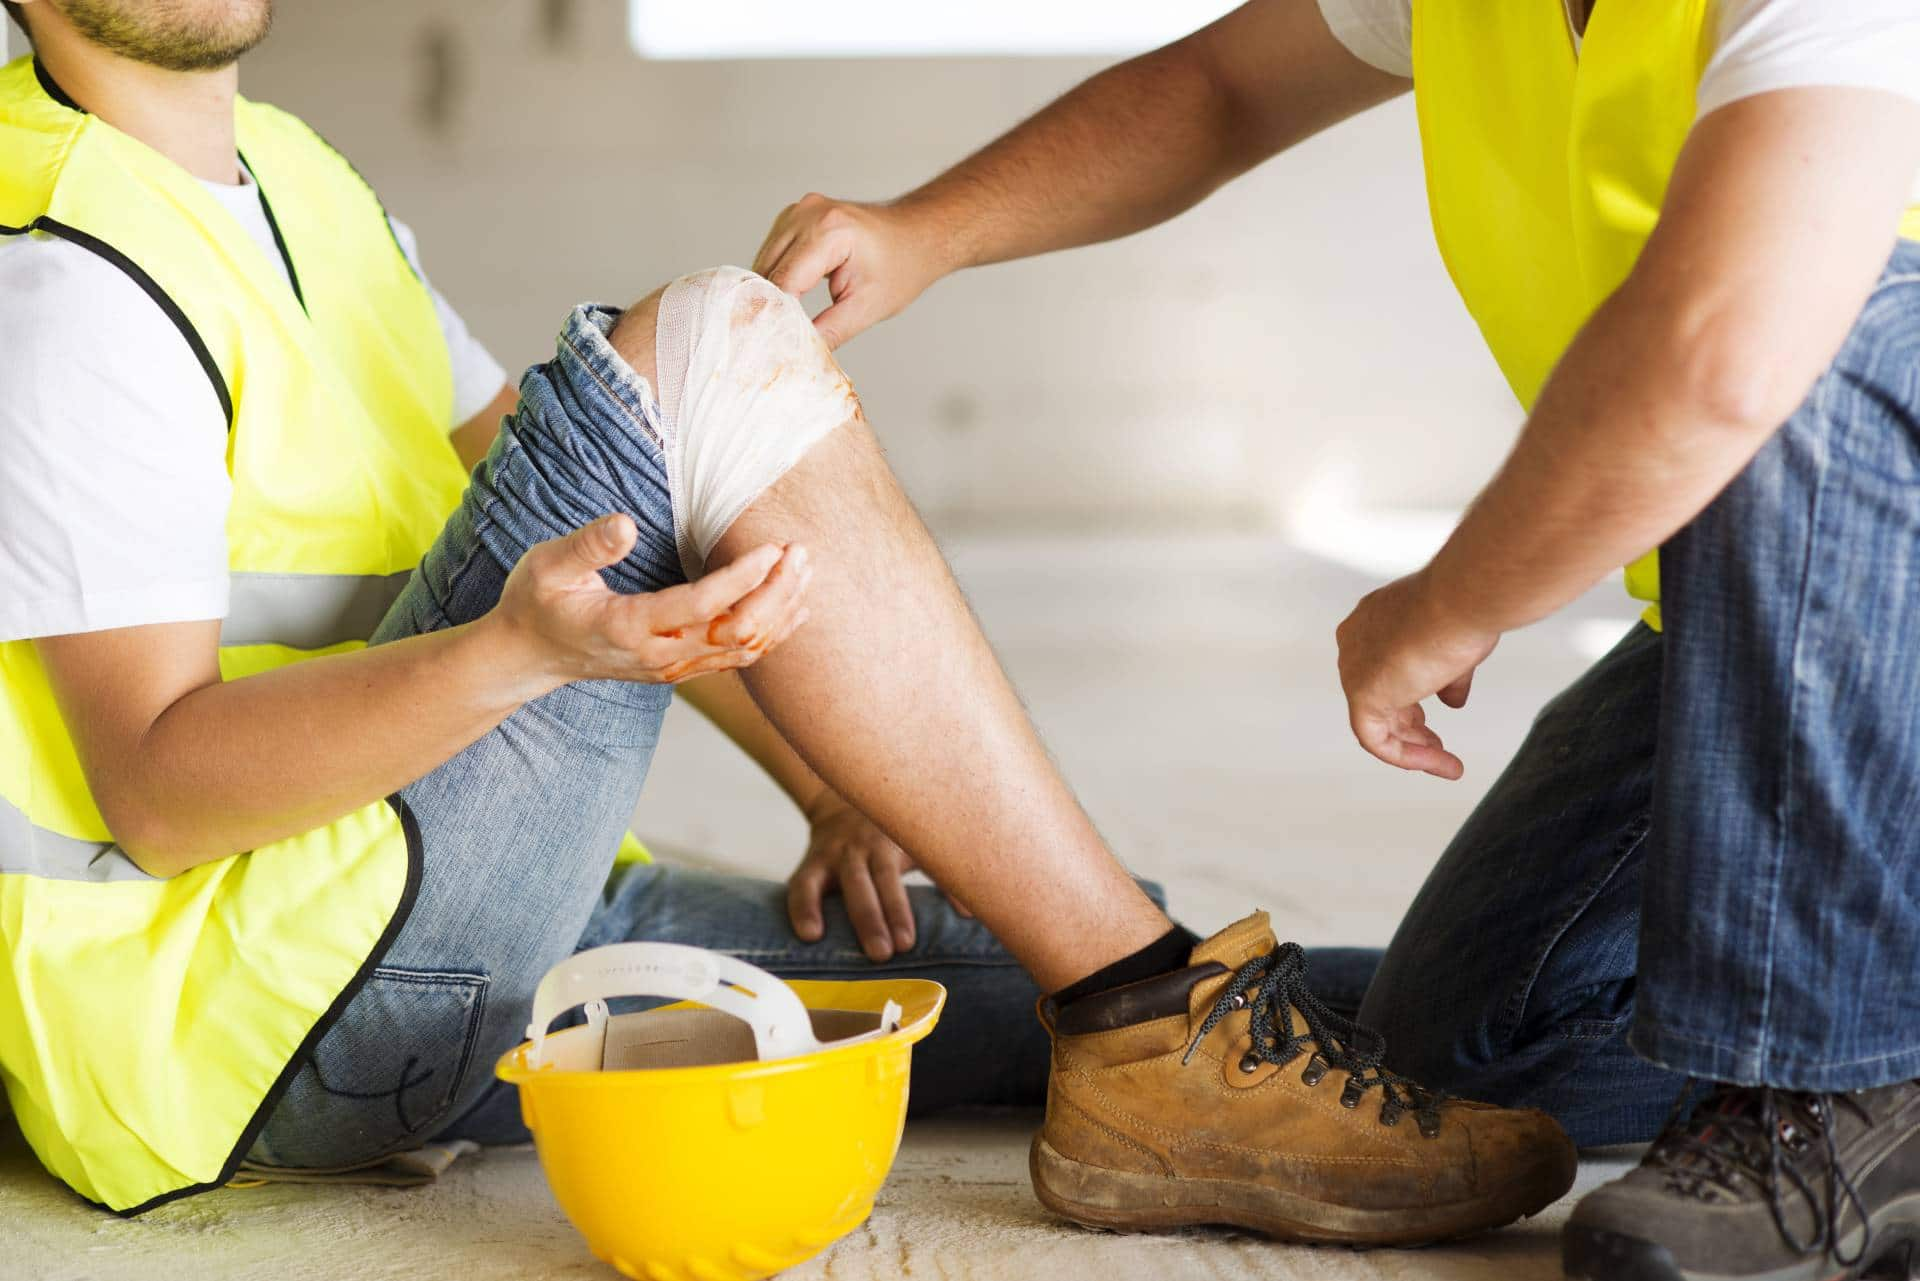 Hurt on the job? Schedule a free consultation with our personal injury lawyers at the Angell Law Firm in North Buckhead, Ga.